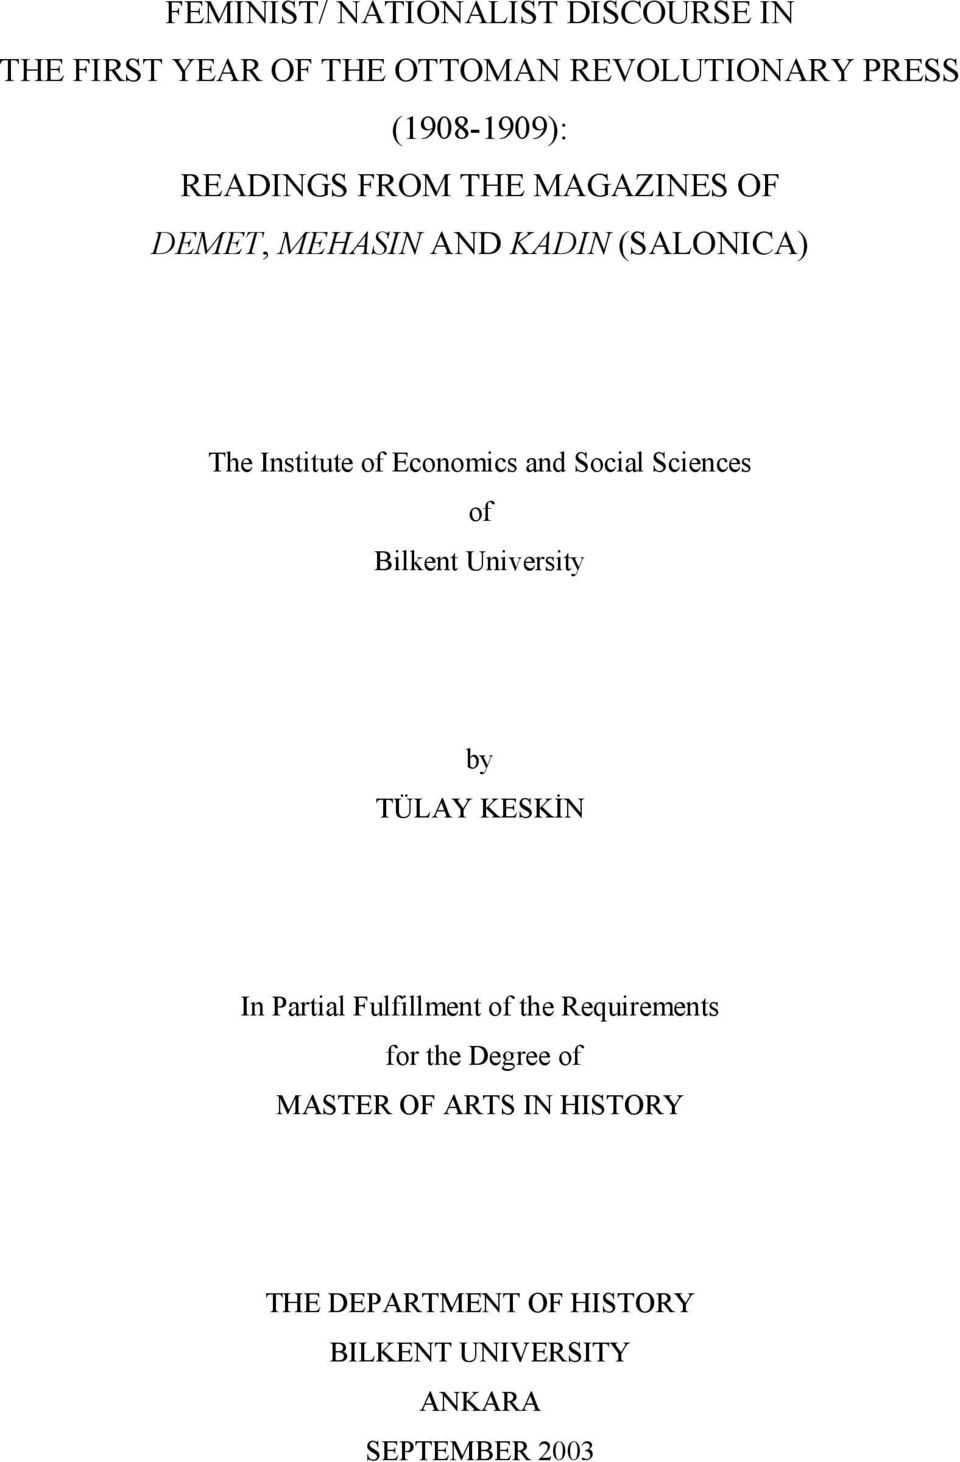 Social Sciences of Bilkent University by TÜLAY KESKİN In Partial Fulfillment of the Requirements for